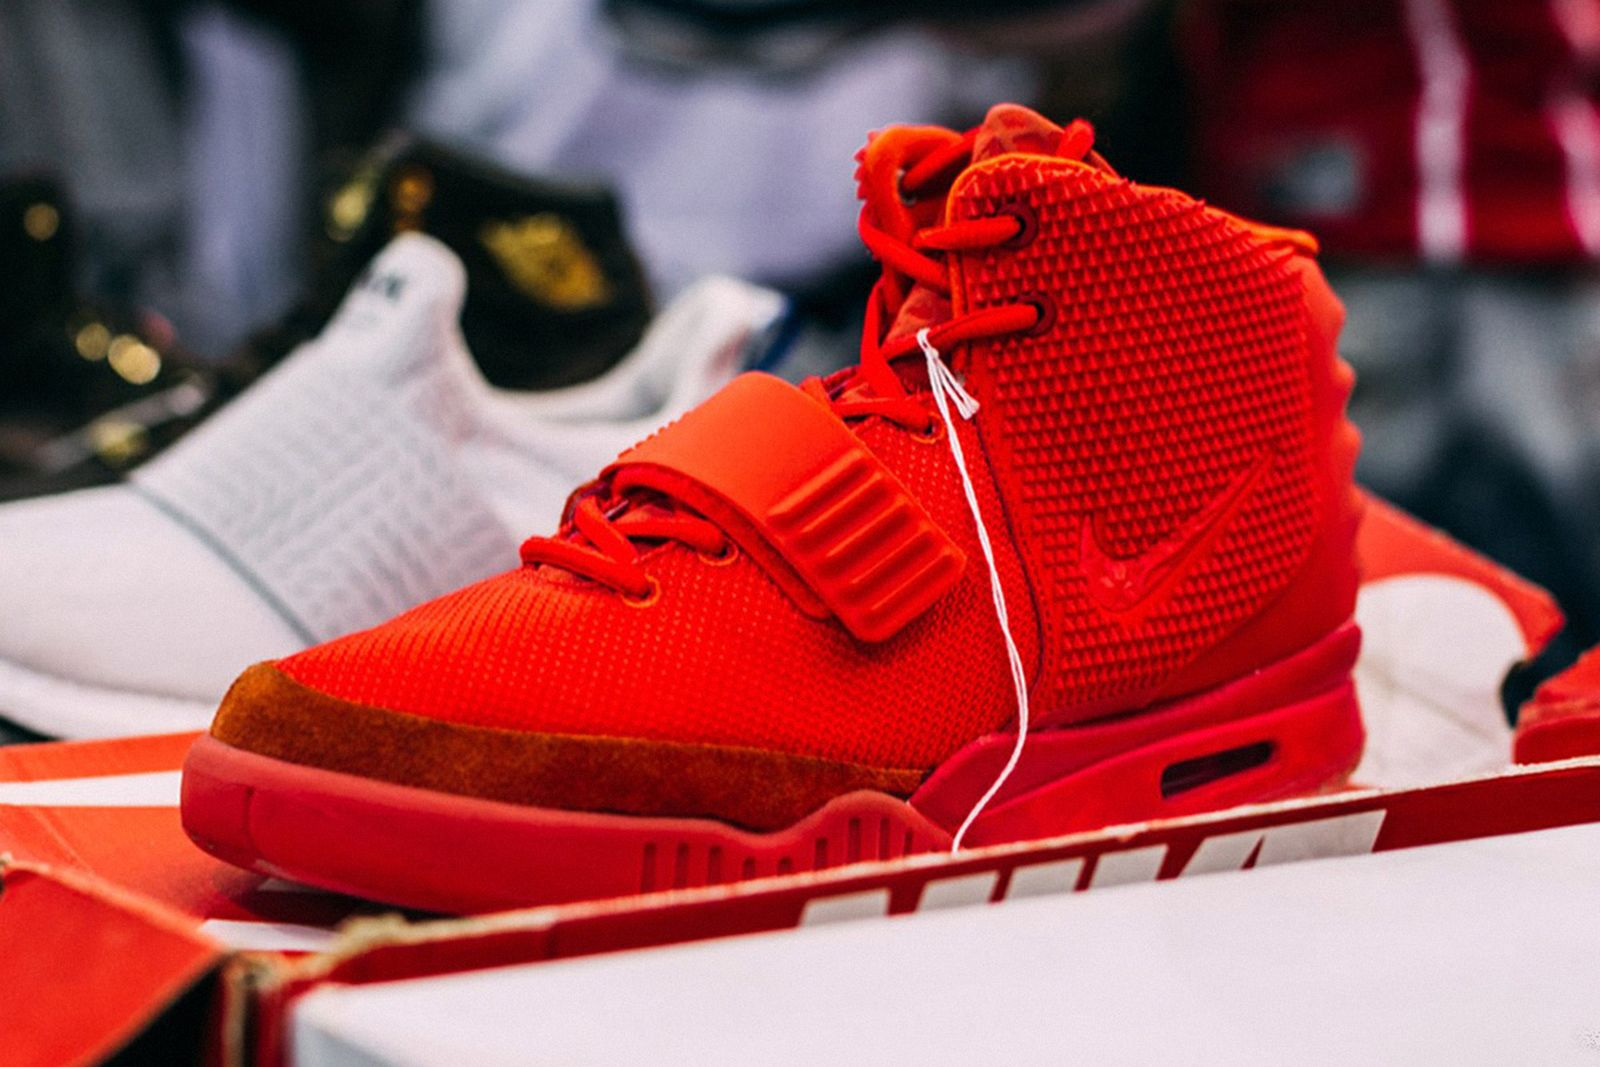 goat-black-friday-sale-nike-air-yeezy-red-october-main